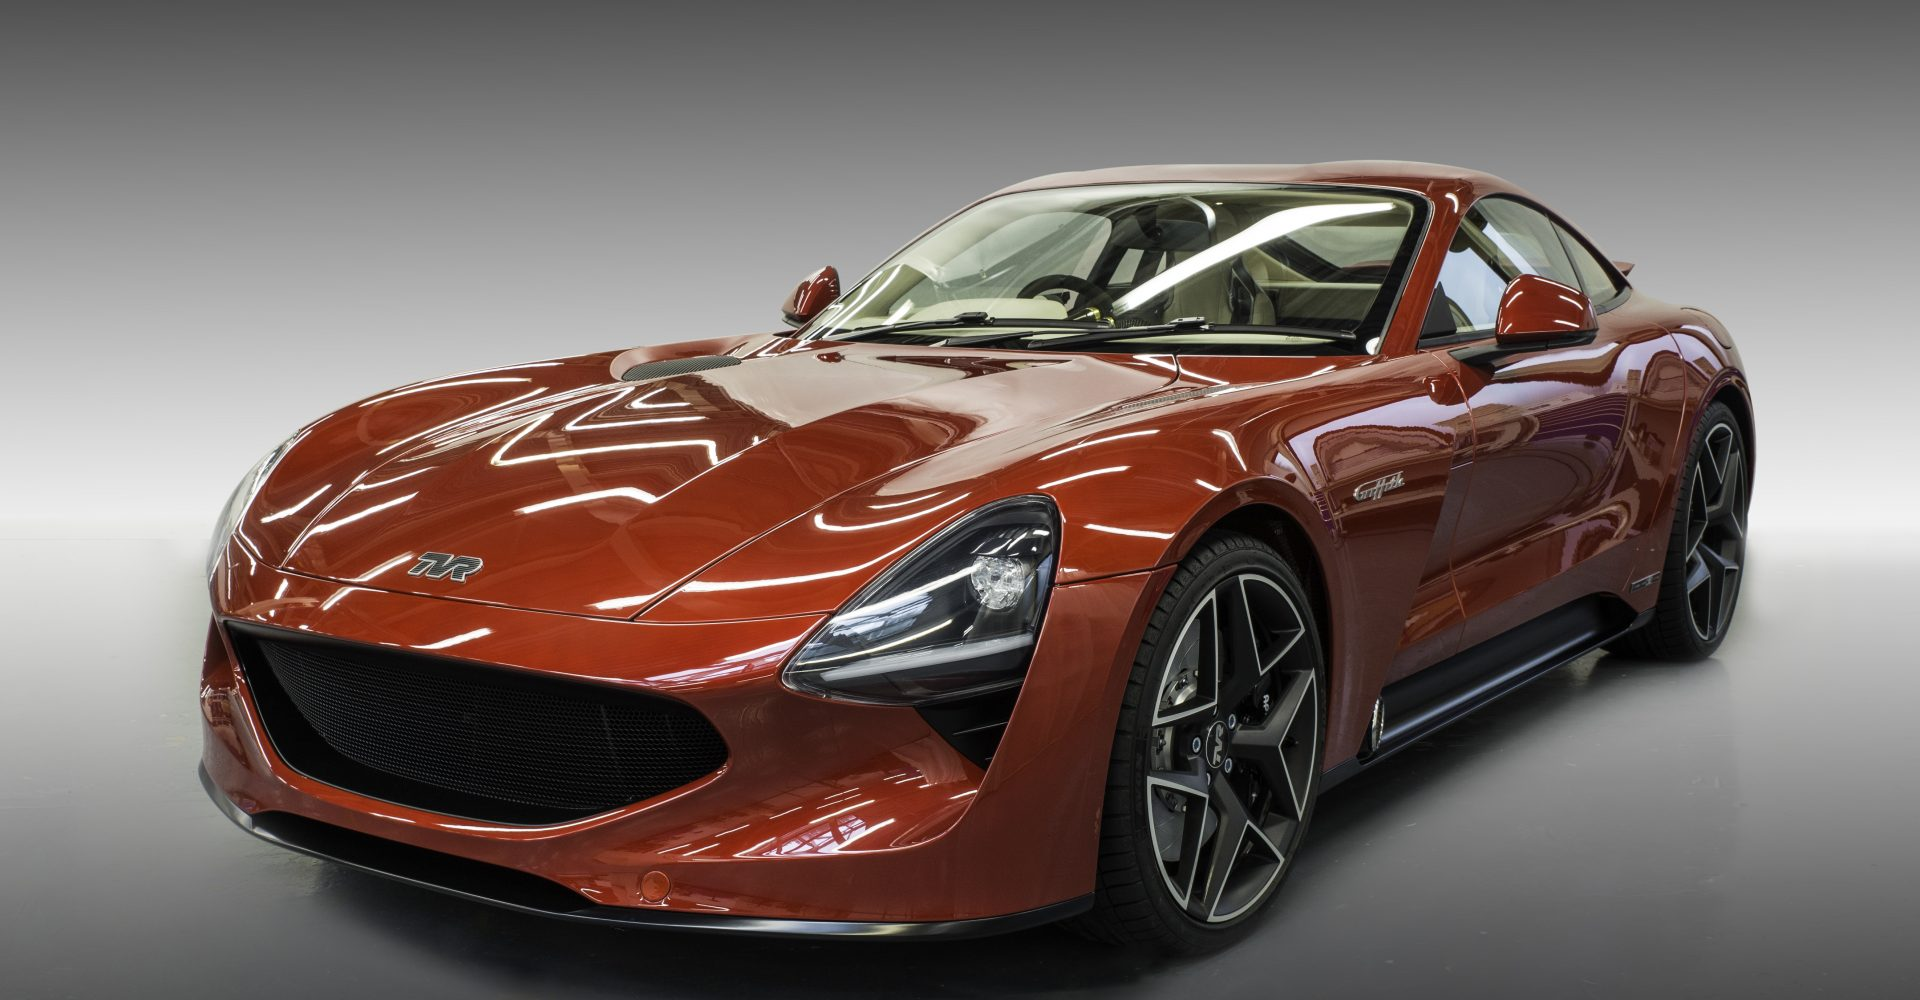 5 things you need to know about the TVR Griffith